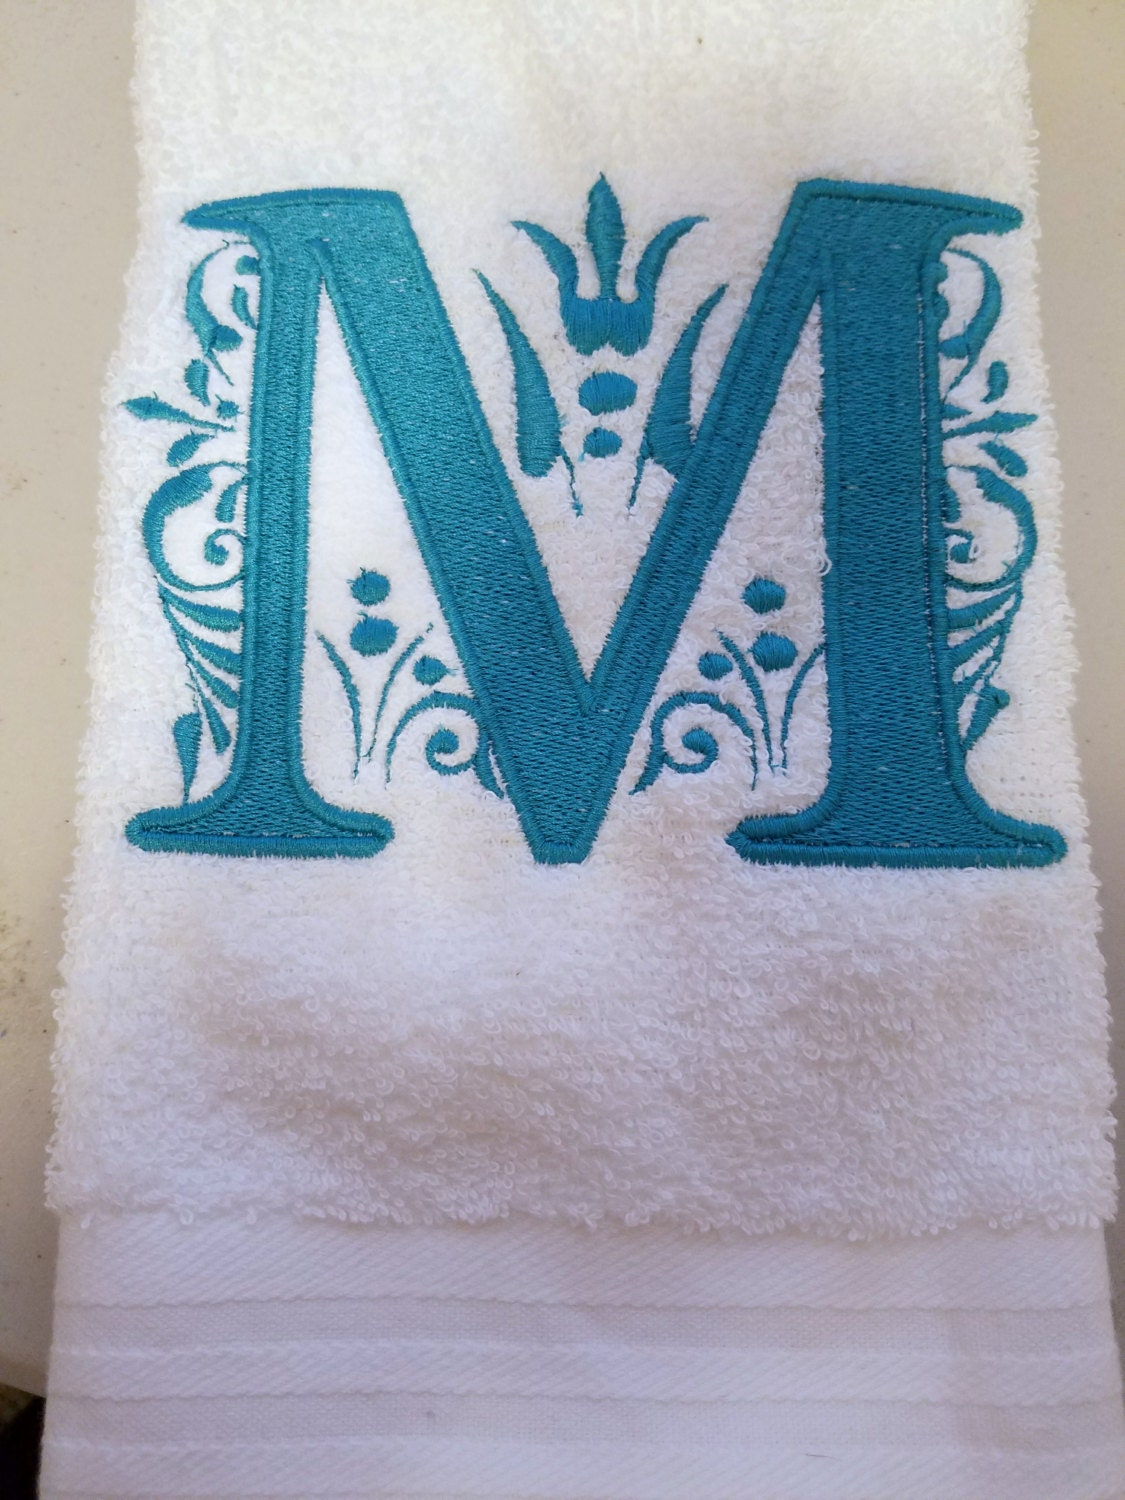 Towels embroidered monogram towels wedding towels bridal for Embroidered towels for wedding gift